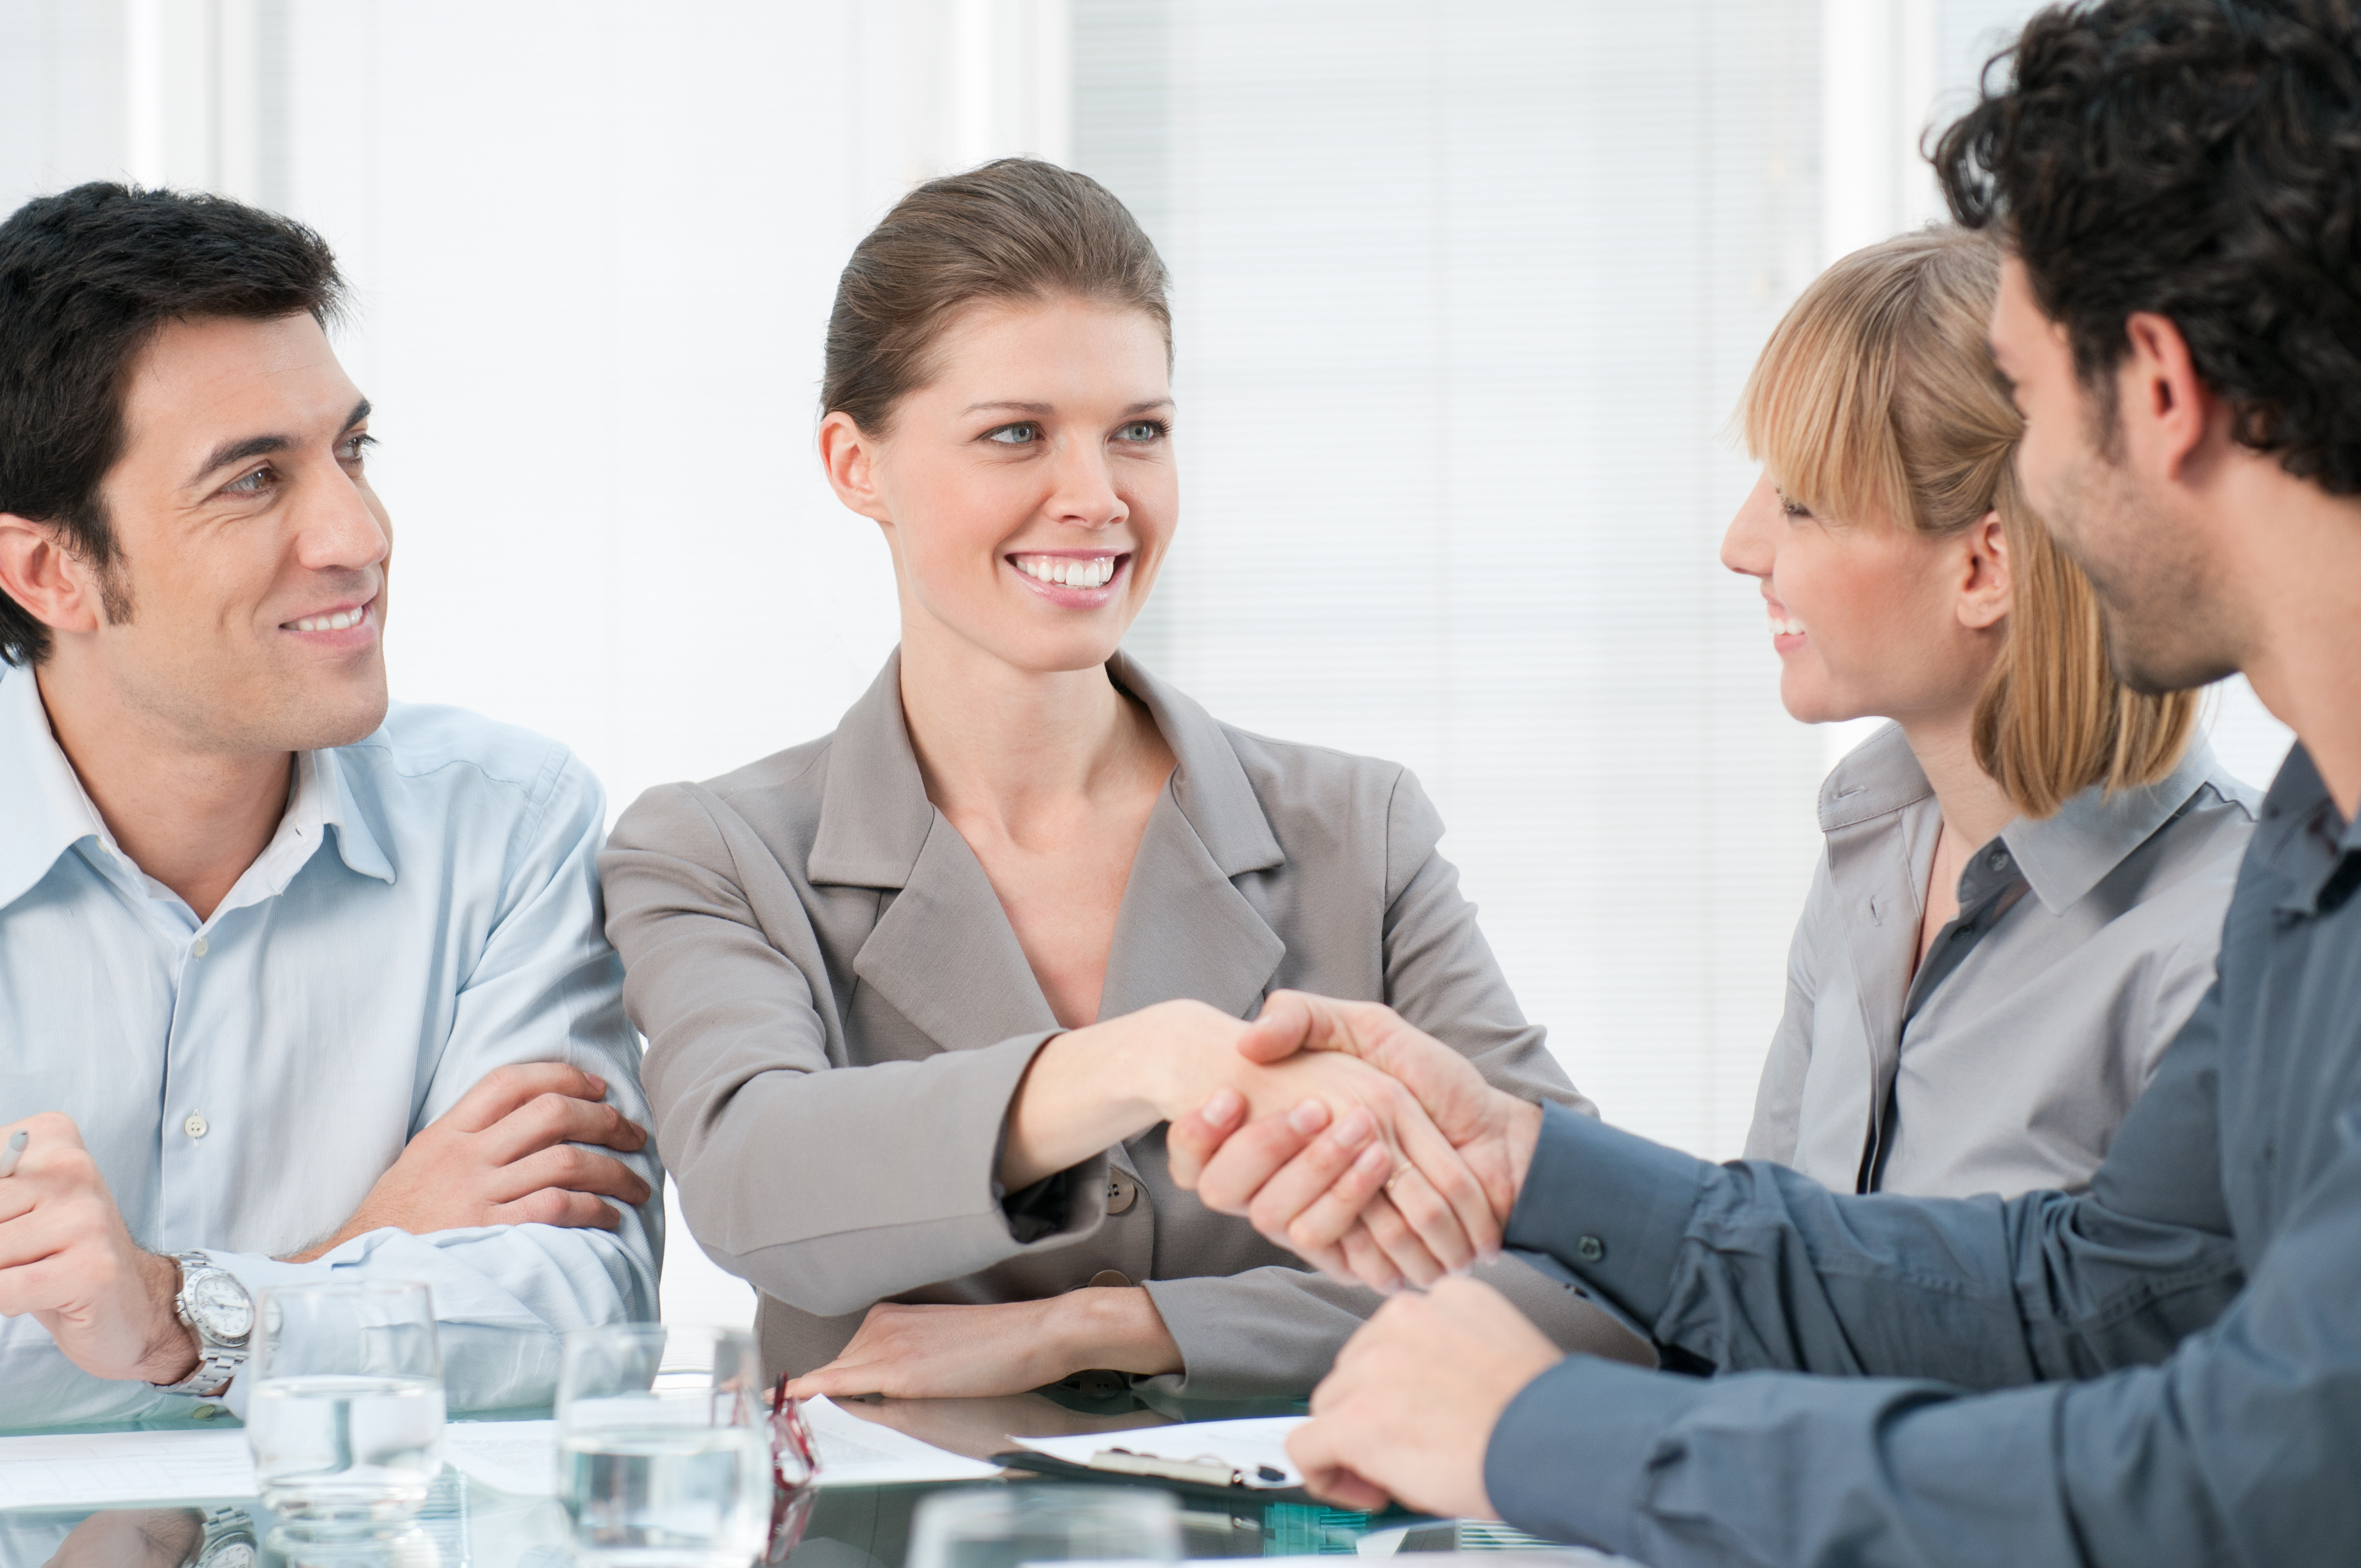 Referral marketing (Image: Happy smiling businesswoman shaking hands after a business meeting)